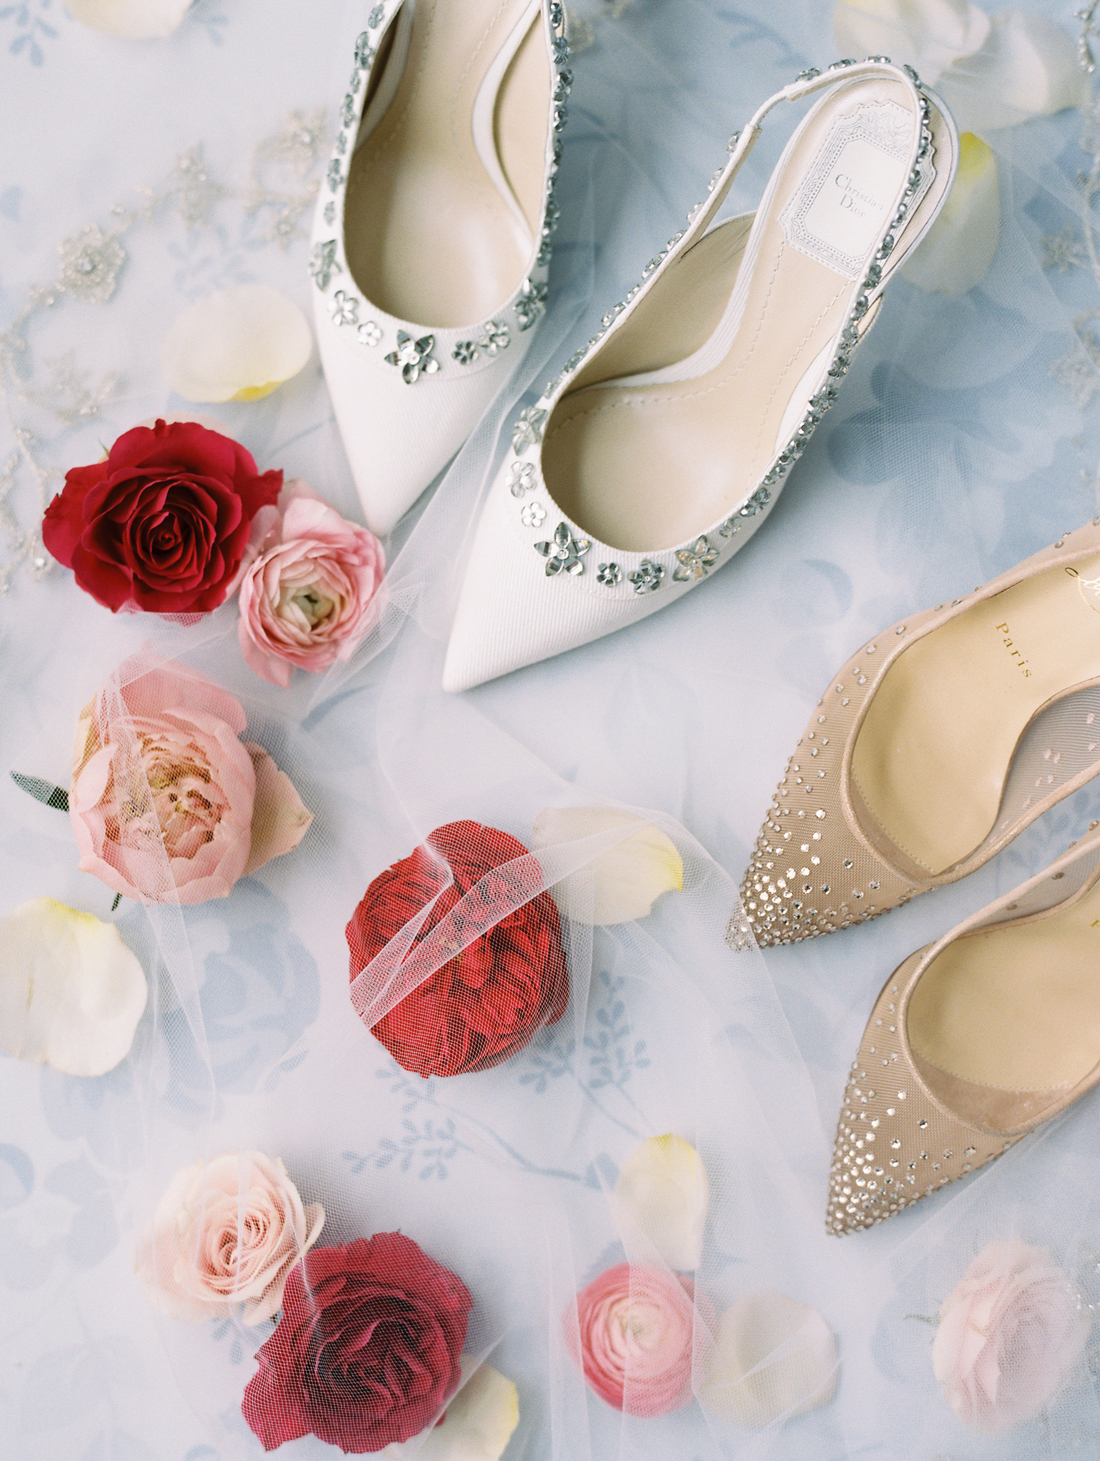 25 Nontraditional Wedding Shoe Ideas From Stylish Brides Martha